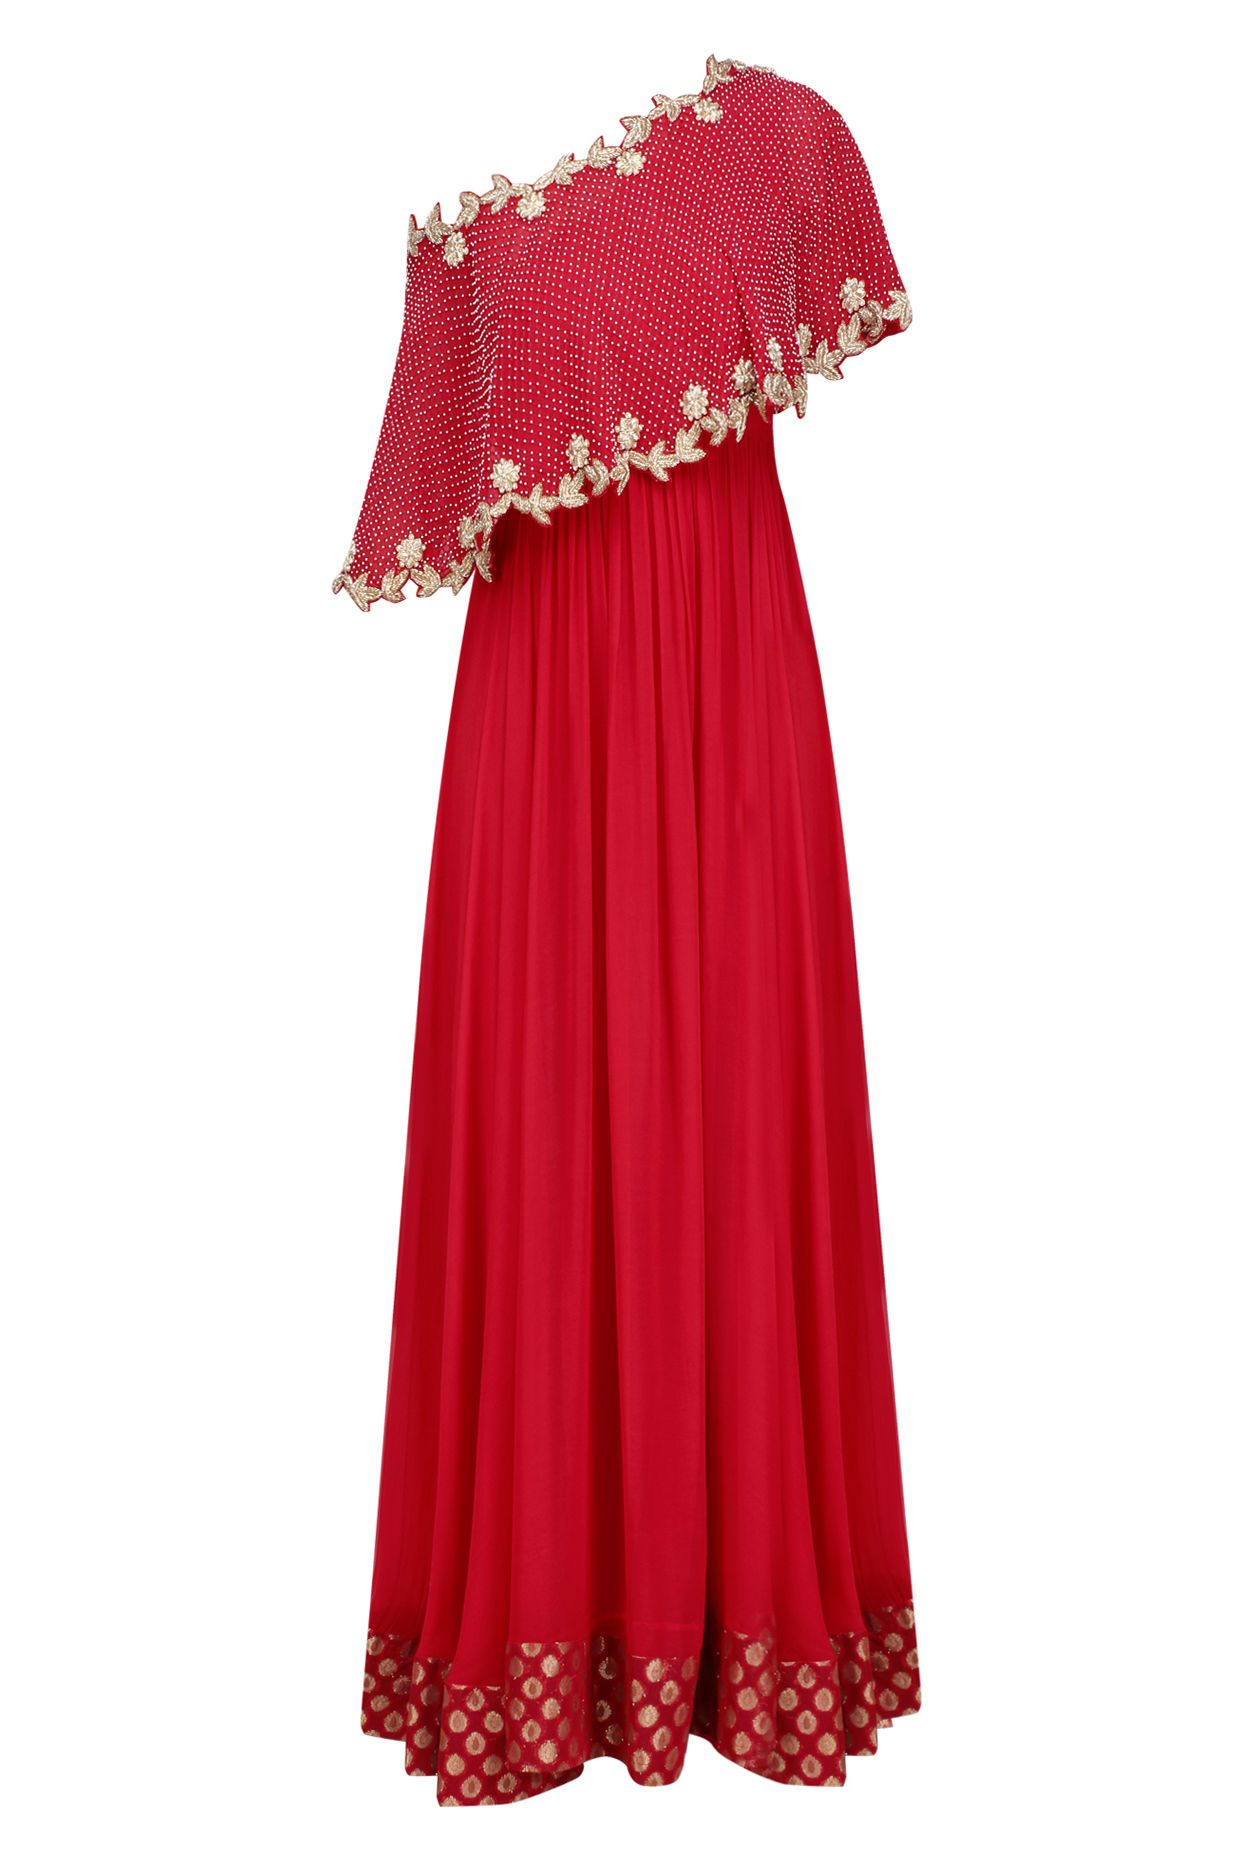 9be2a1161aa Red embroidered one off shoulder cape anarkali set available only at  Pernia s Pop Up Shop.